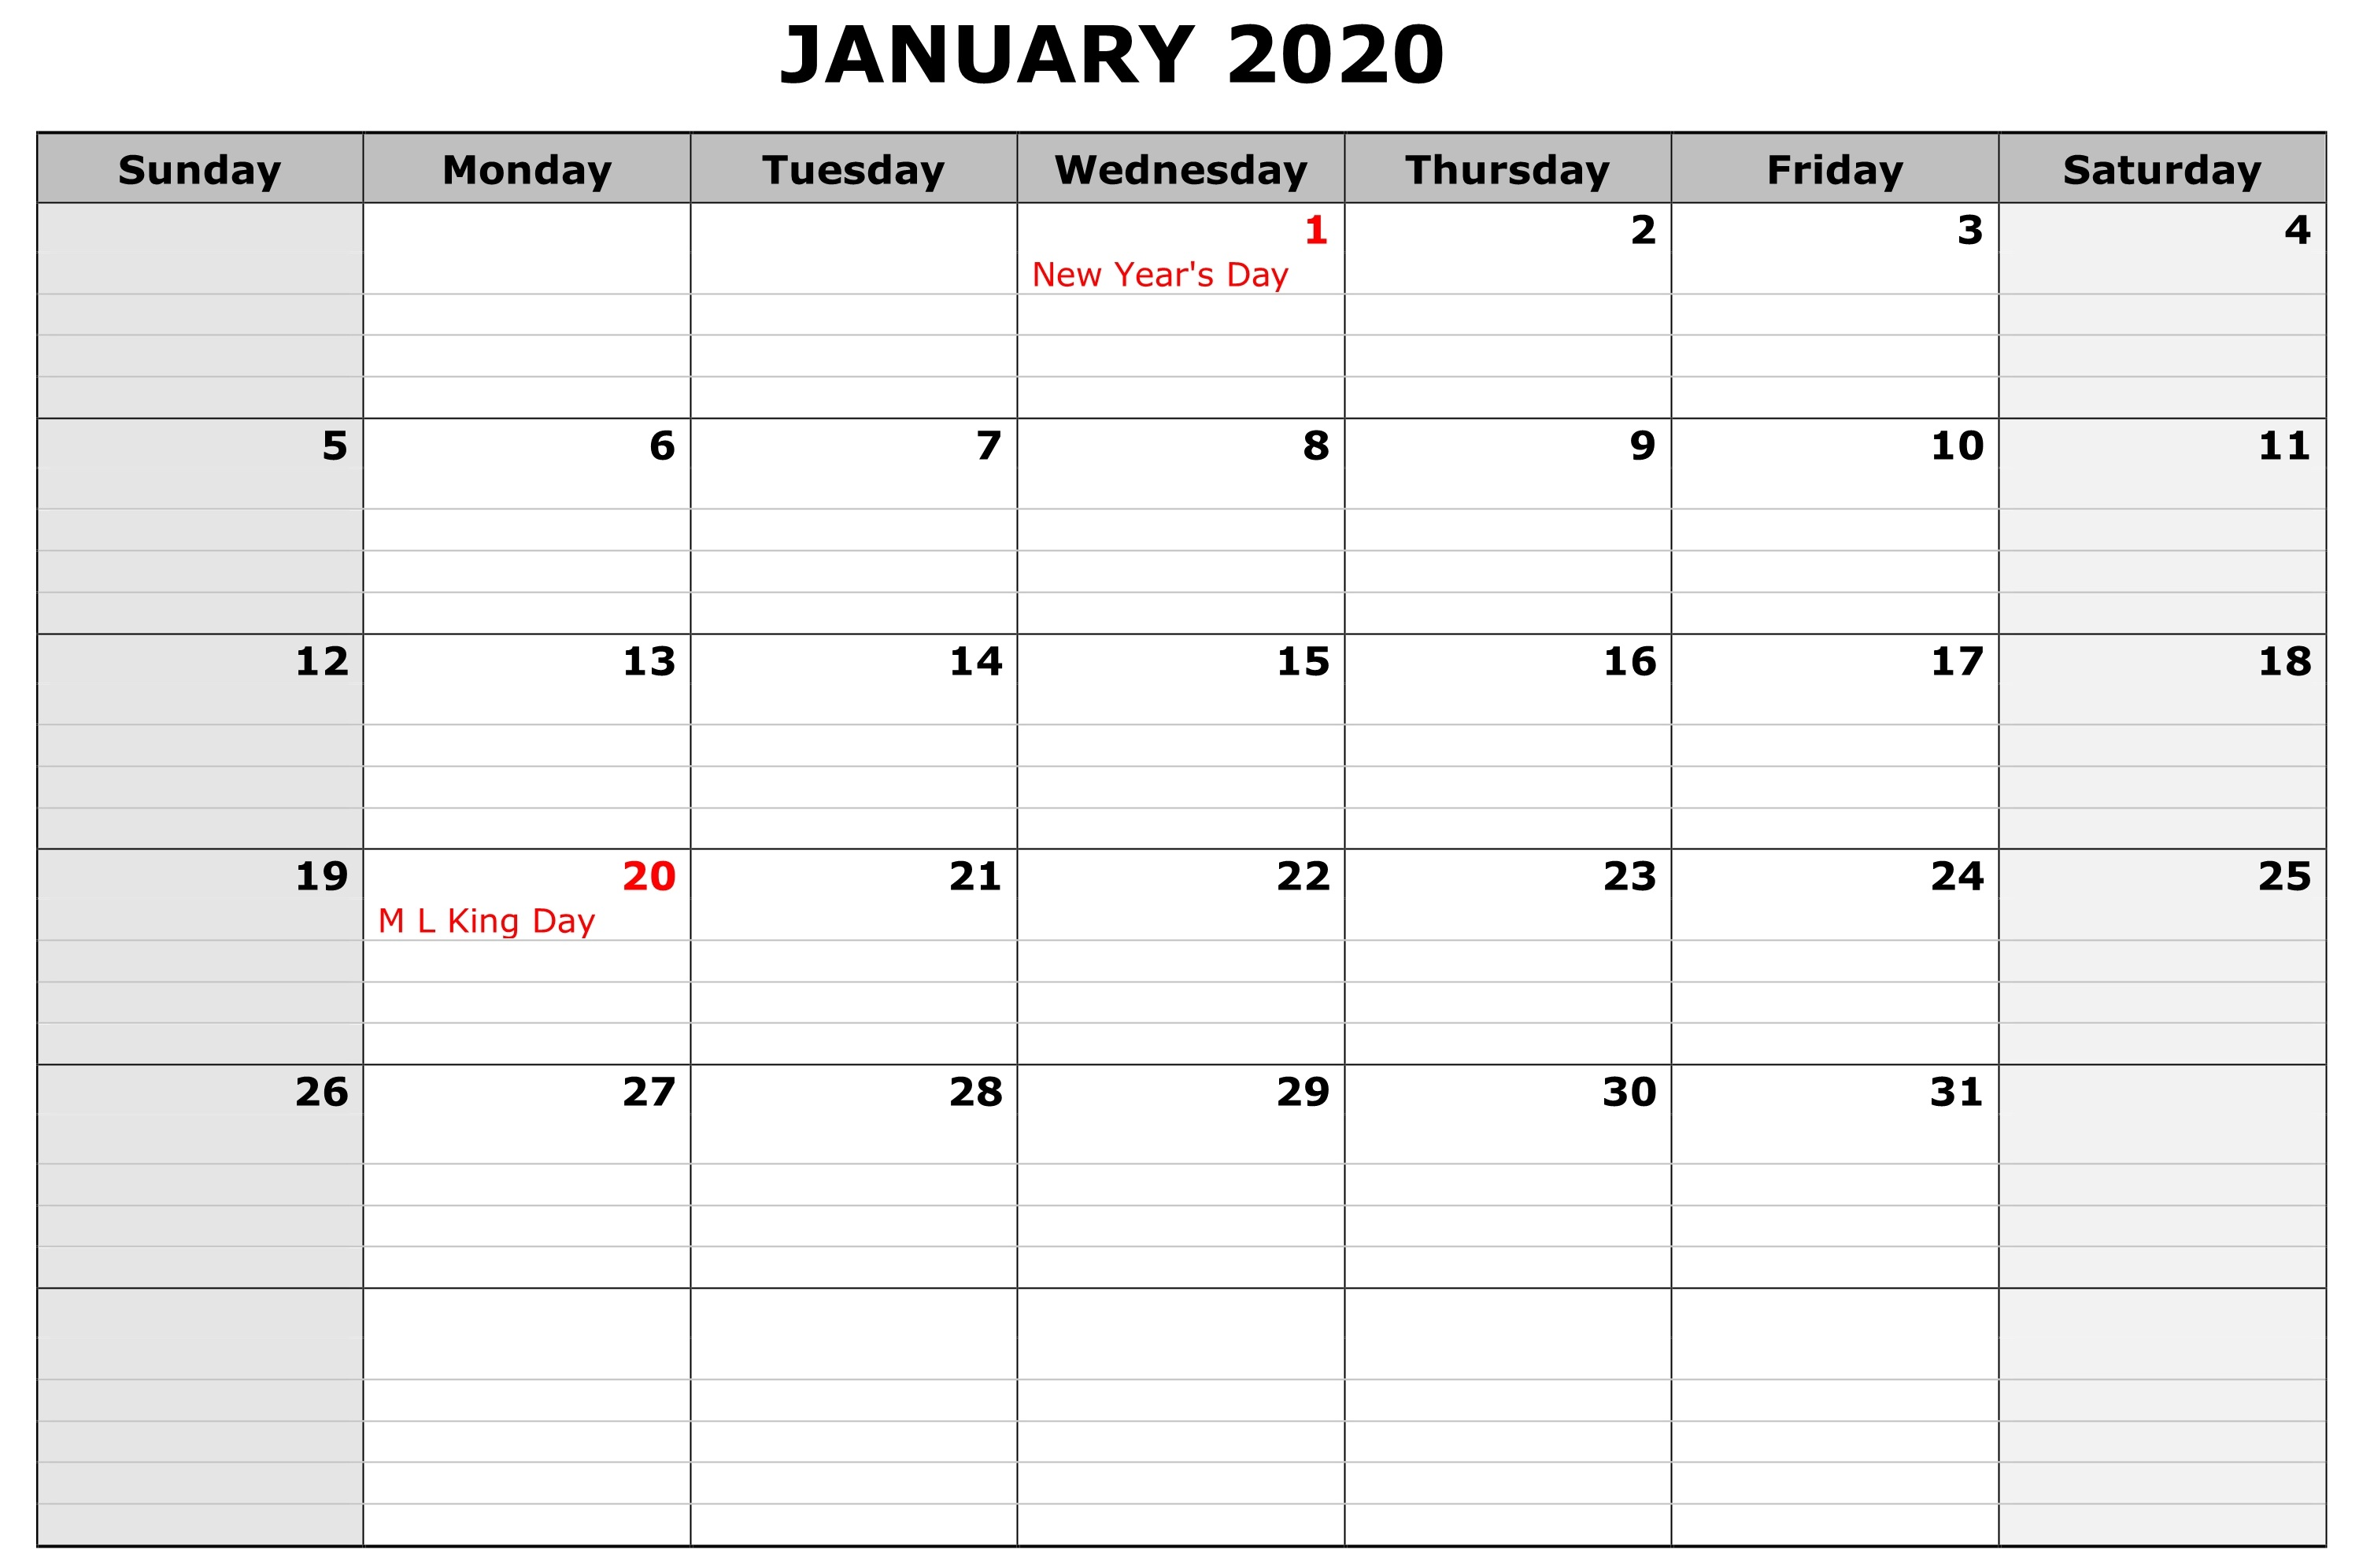 Calendar January 2020 Printable School